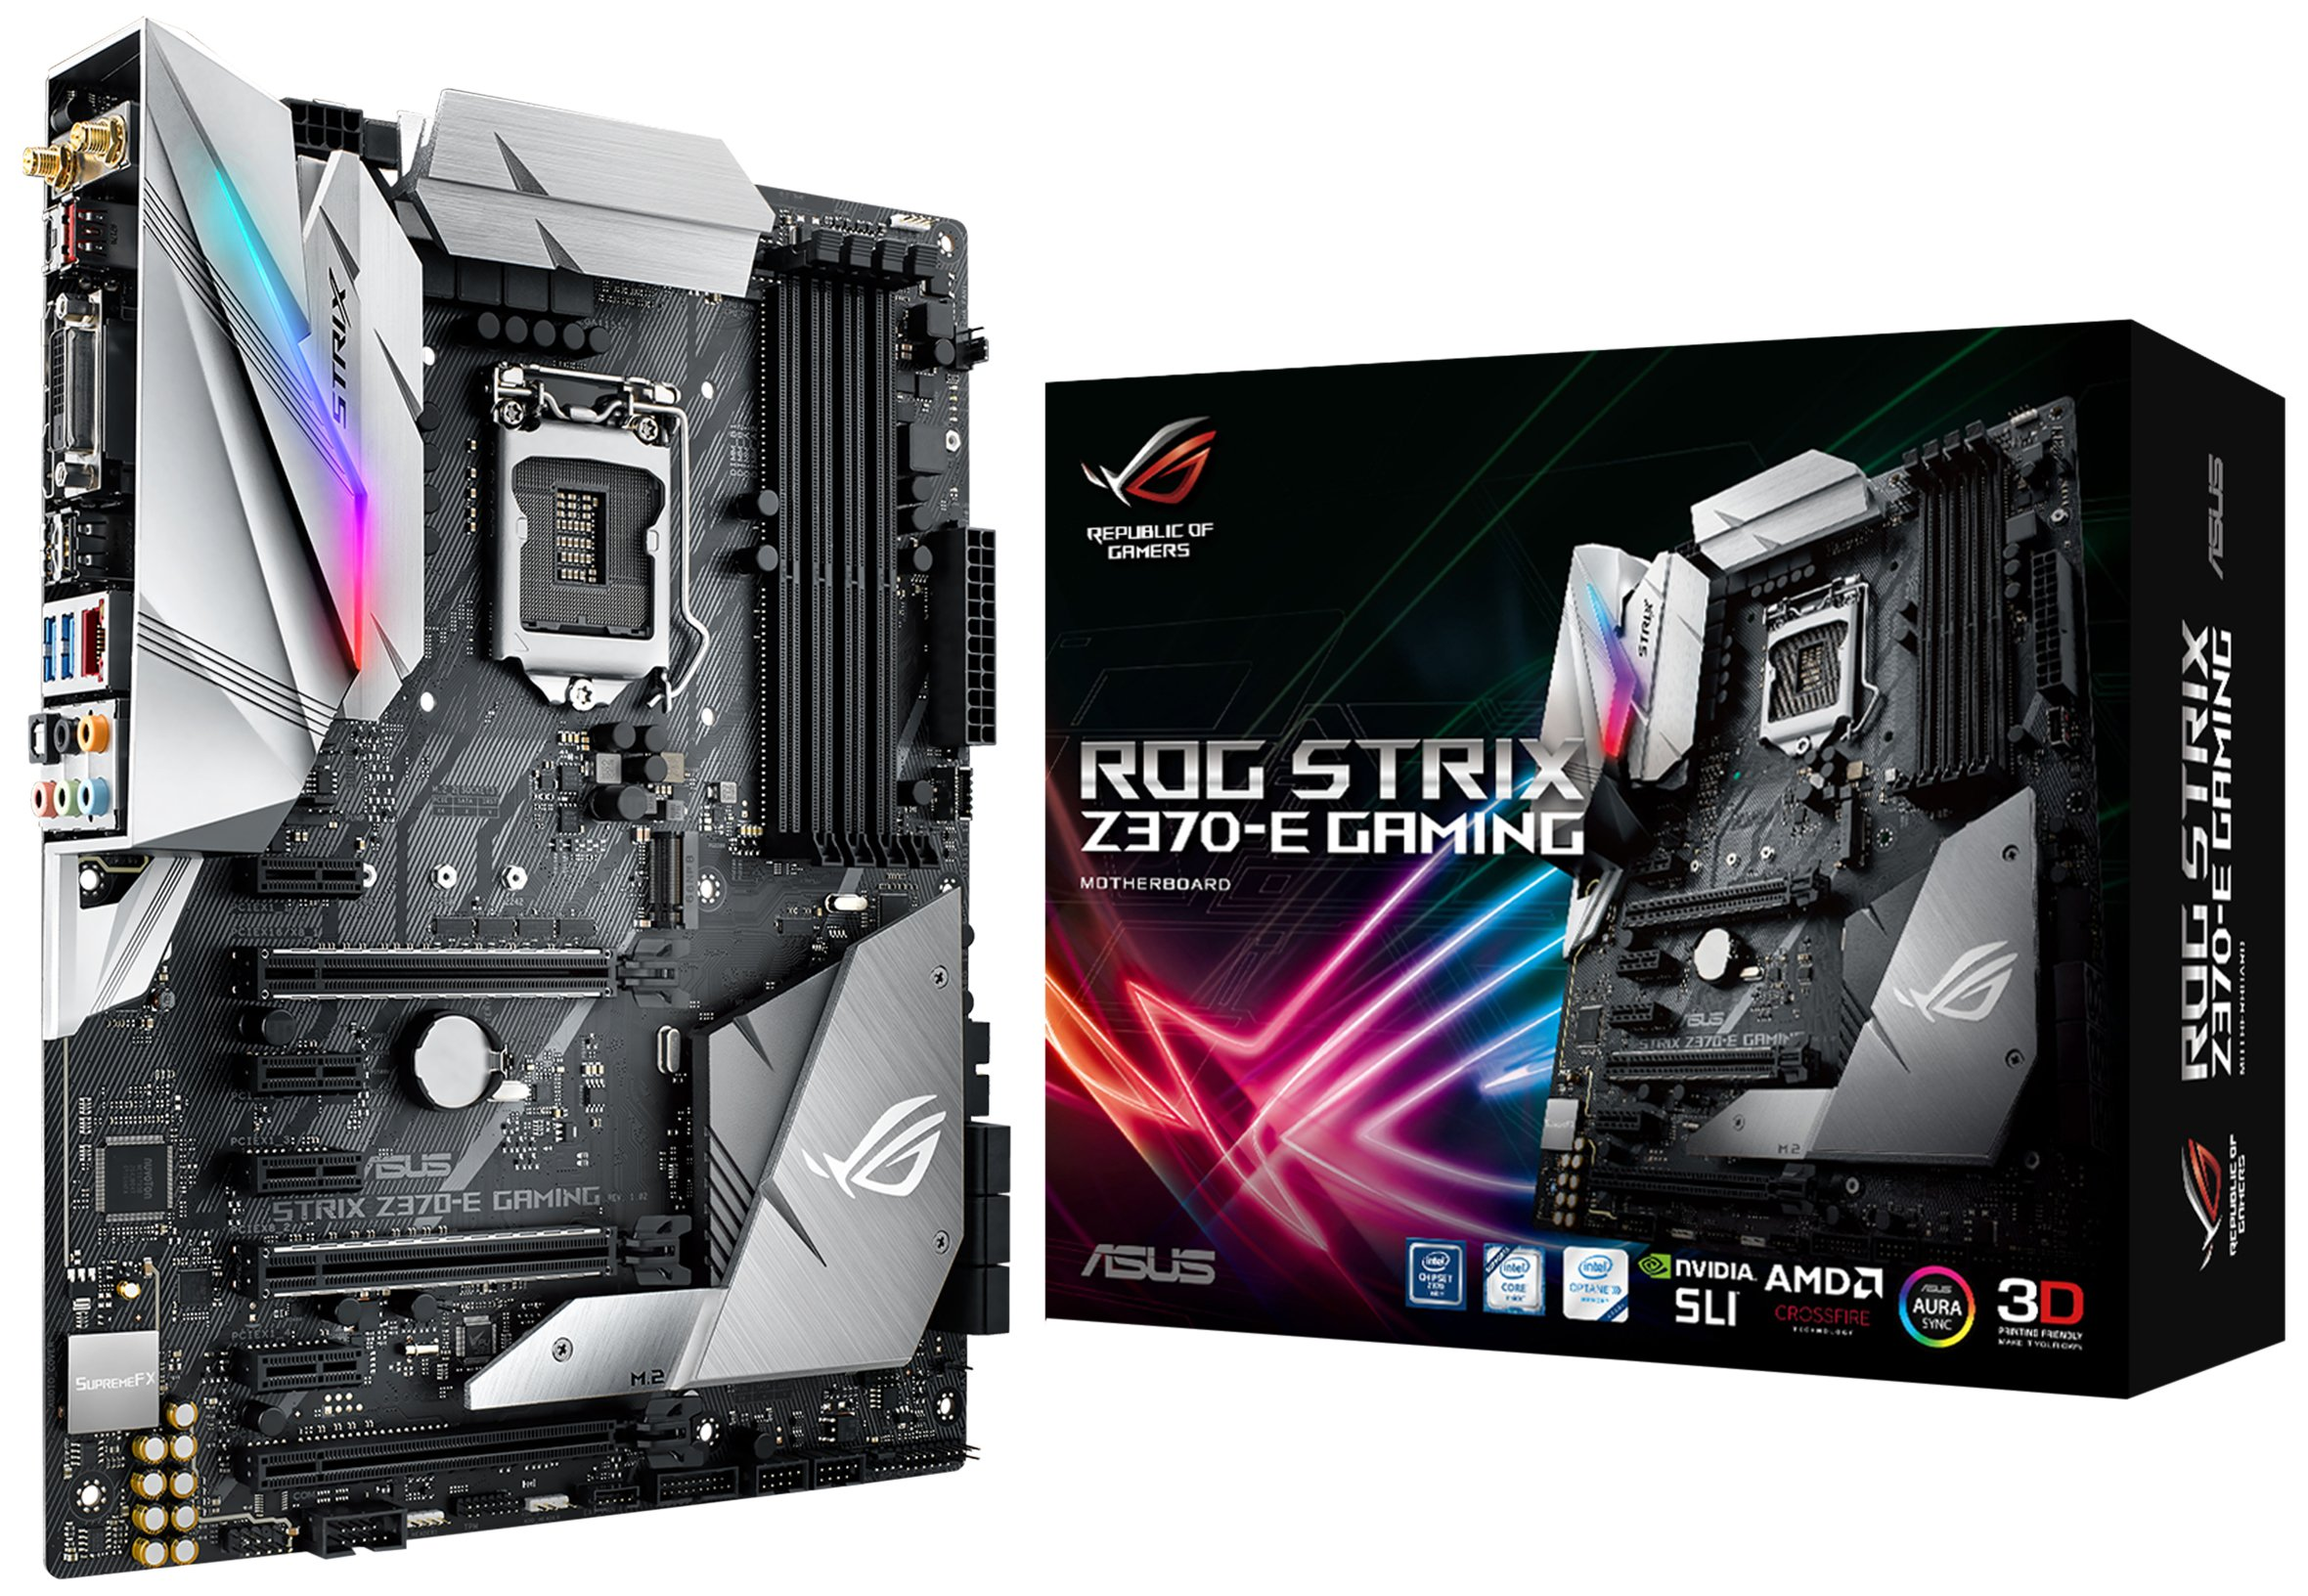 ASUS ROG STRIX Z370-E GAMING LGA1151 DDR4 DP HDMI DVI M.2 Z370 ATX Motherboard with onboard 802.11ac WiFi and USB 3.1 for 8th Generation Intel Core Processors by Asus